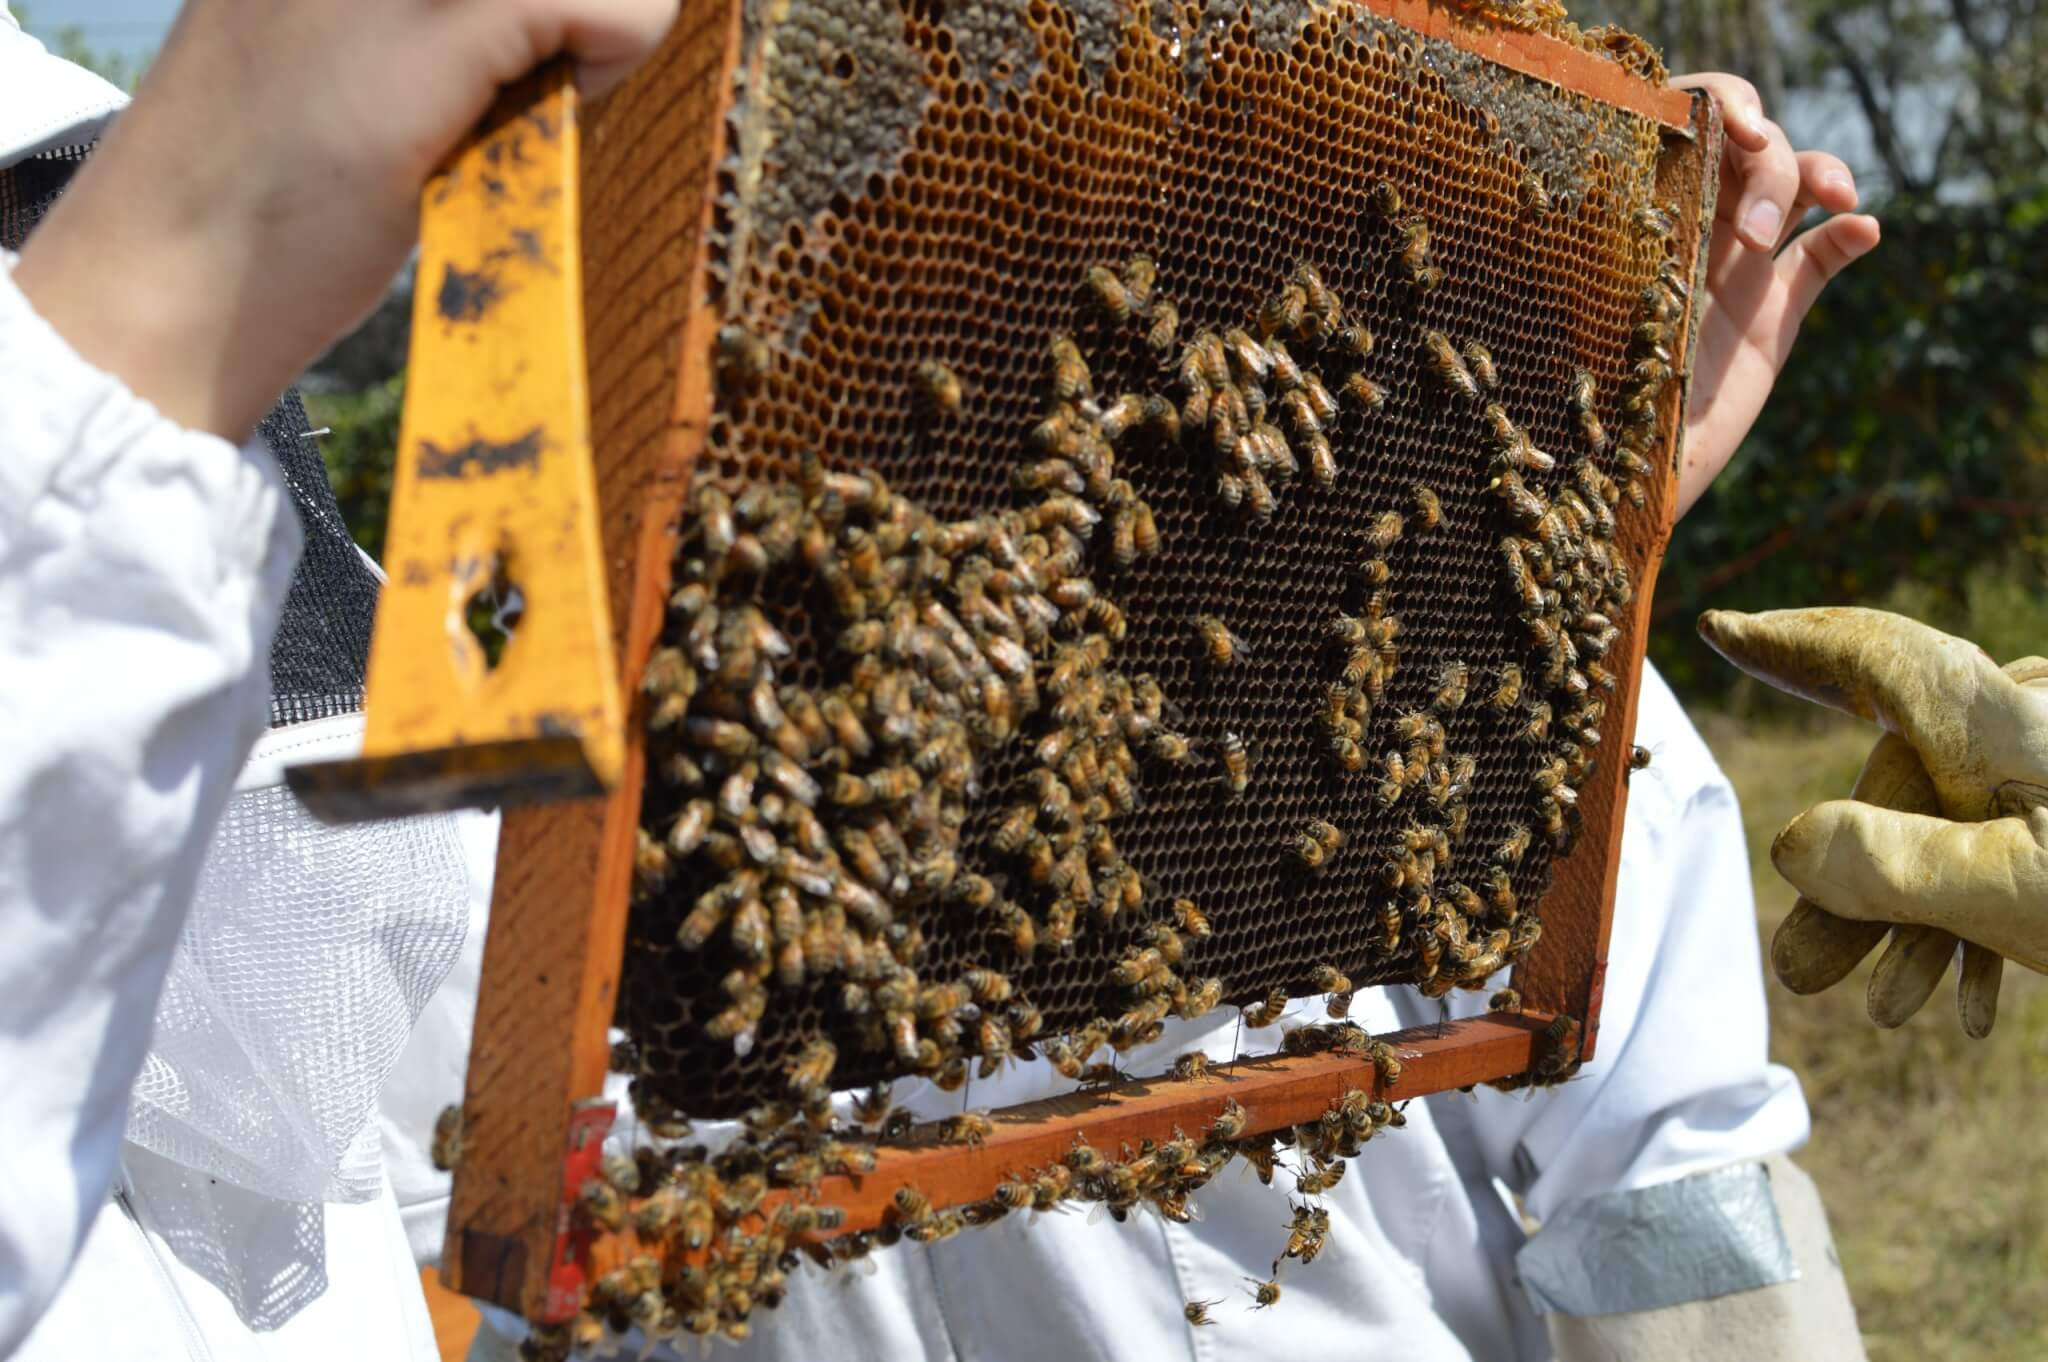 Bees on a Hive Frame | Beekeeping Experience in Mexico City